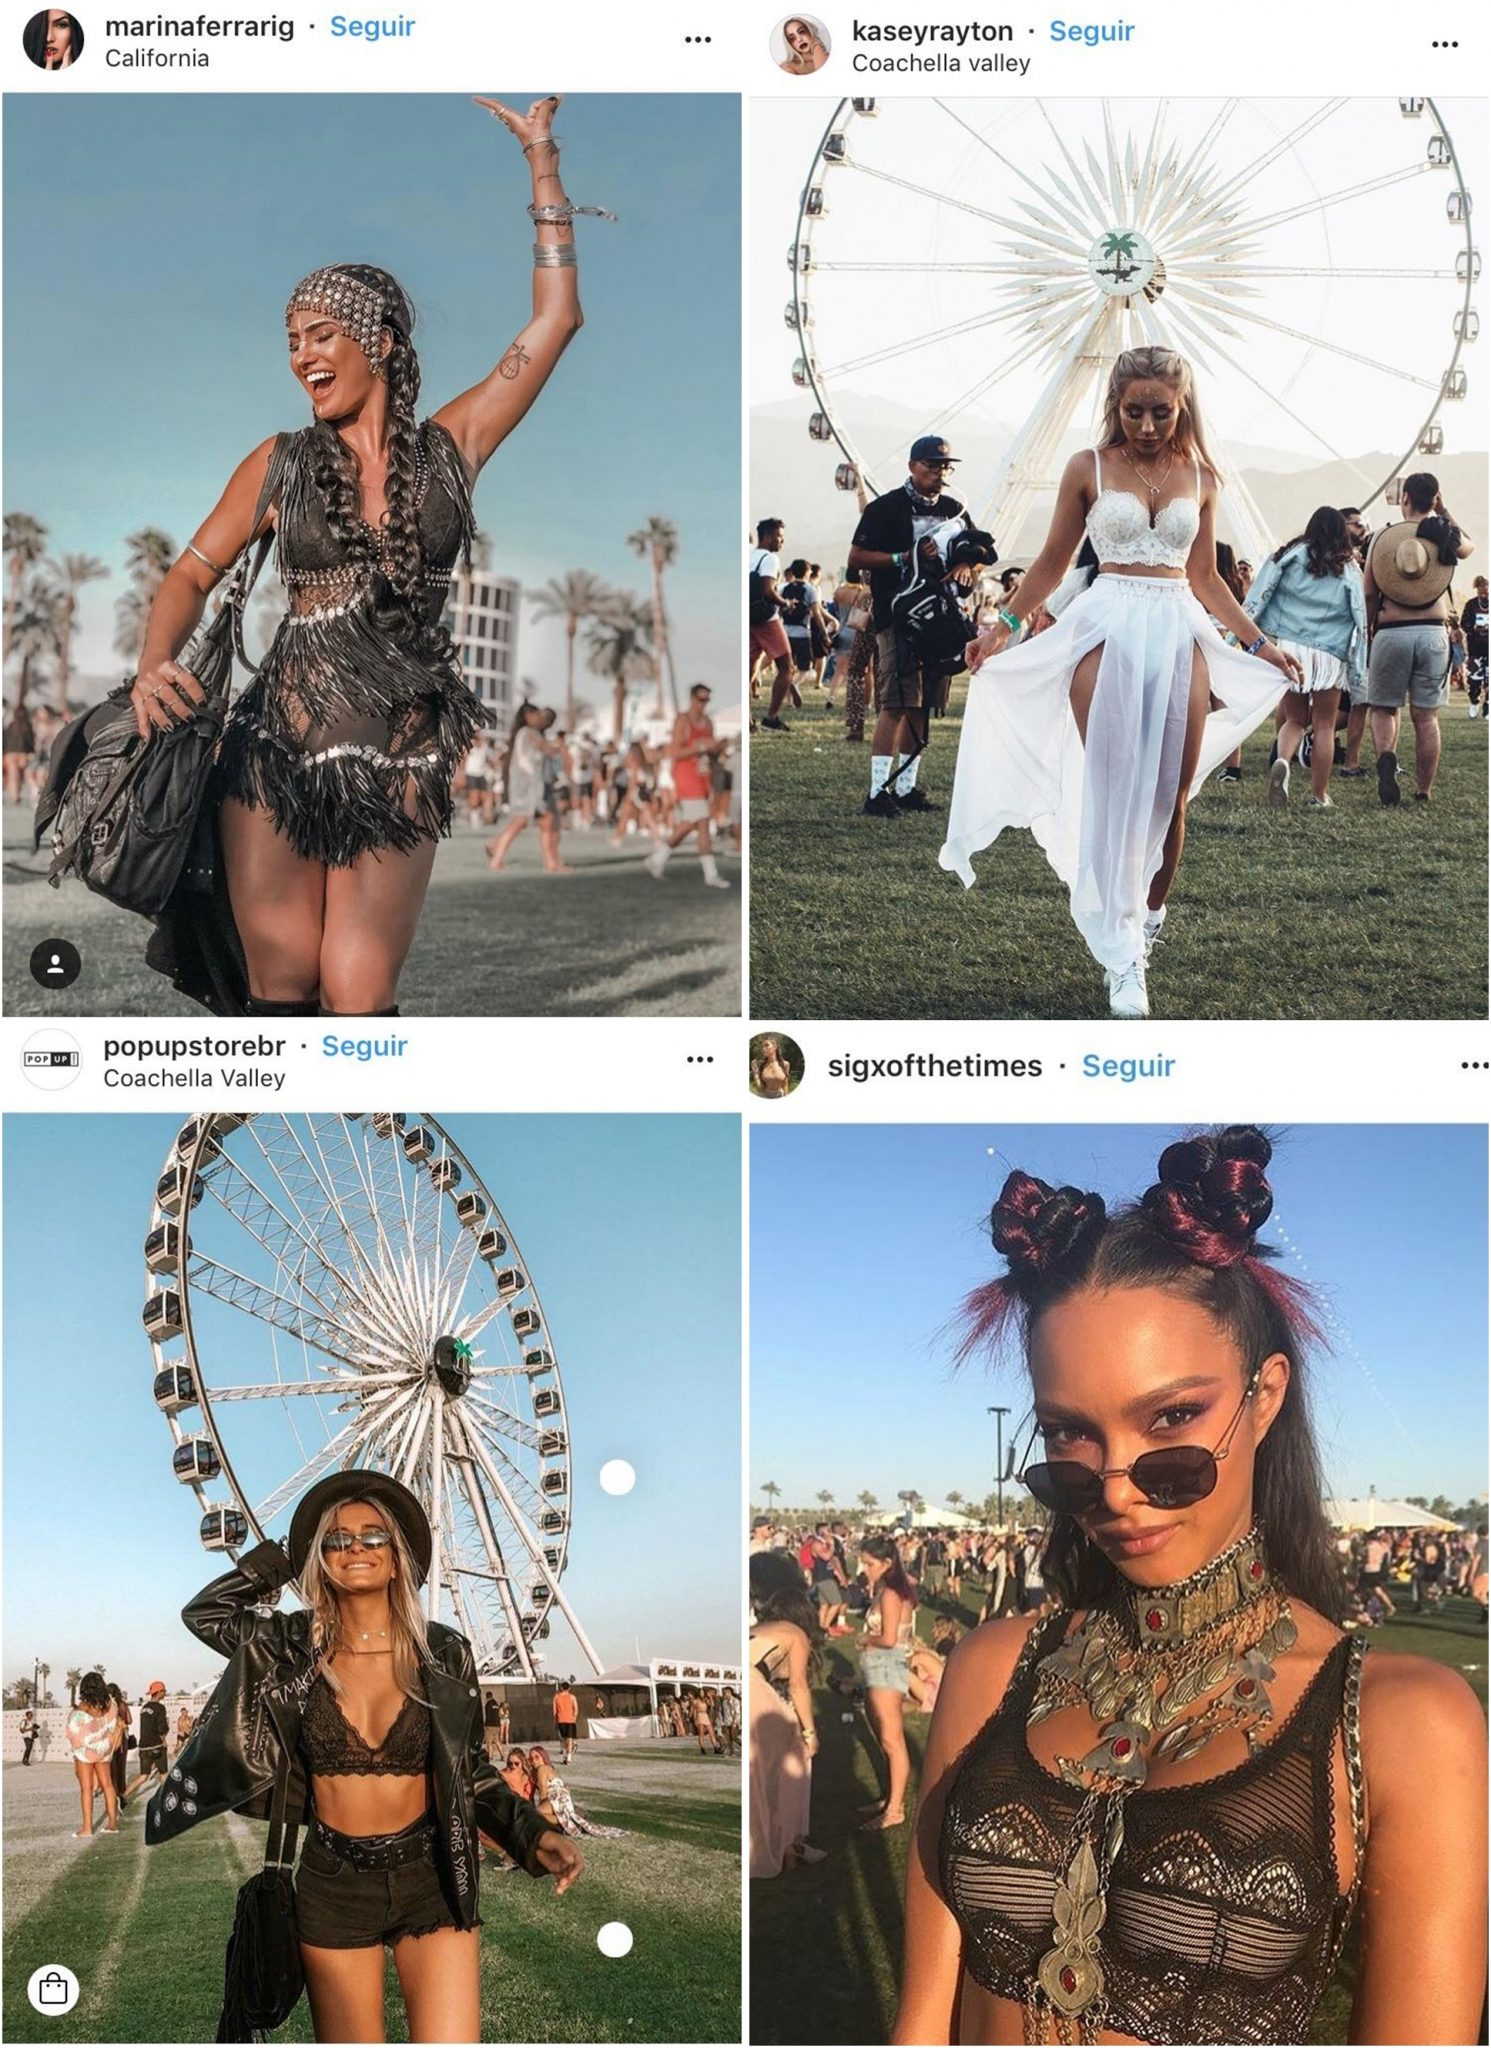 Galera estilosa no Coachella 02 - Os Looks Mais Cheios de Estilo do Coachella